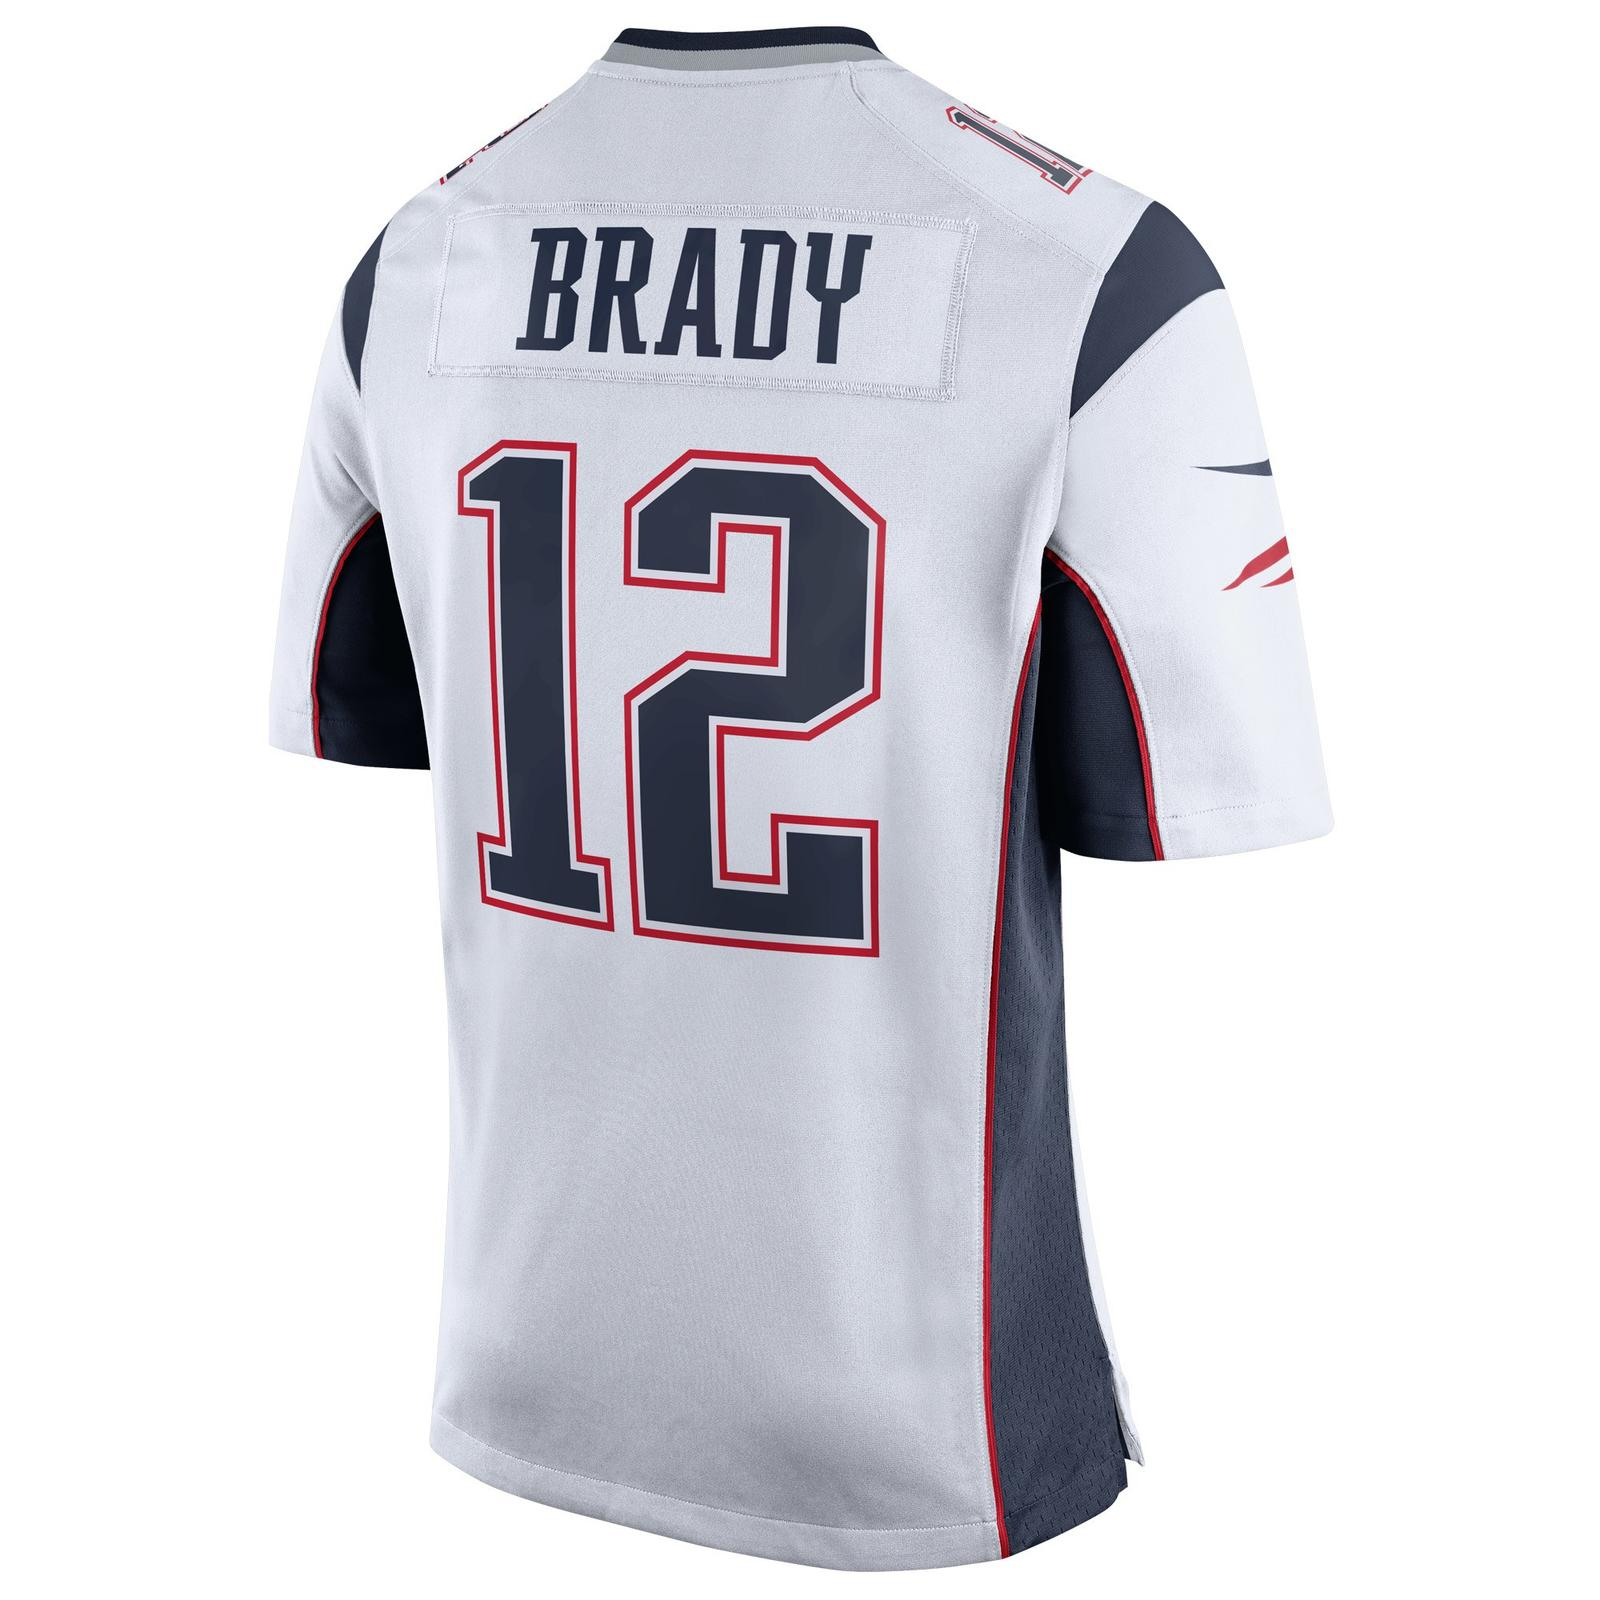 huge selection of 976e2 64383 Best New England Patriots gear for Super Bowl Sunday ...